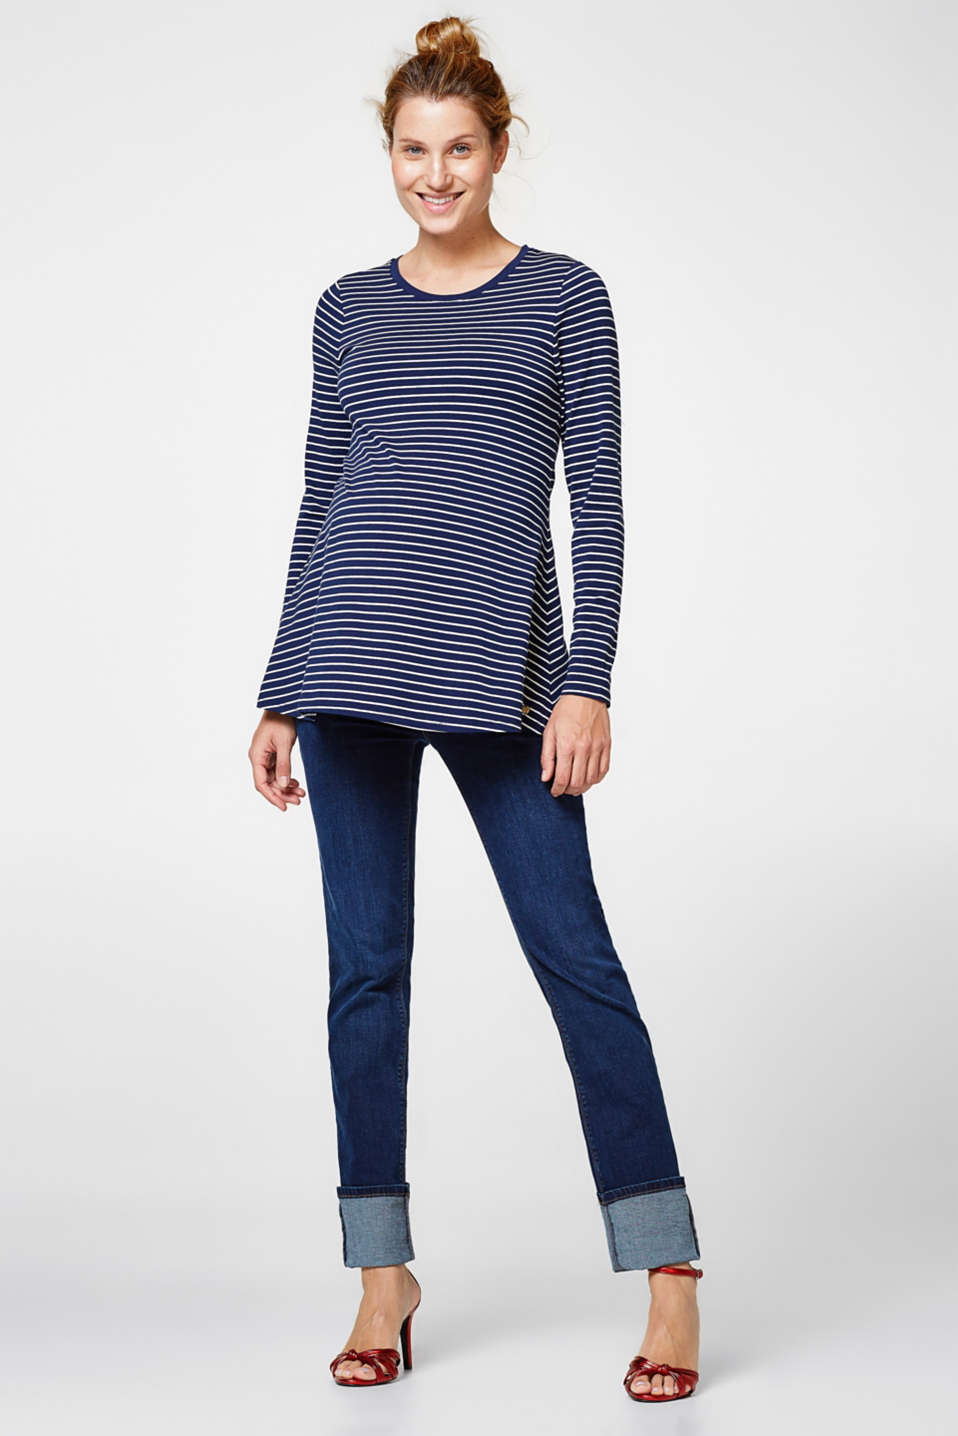 Trendy A-line, stretch long sleeve top